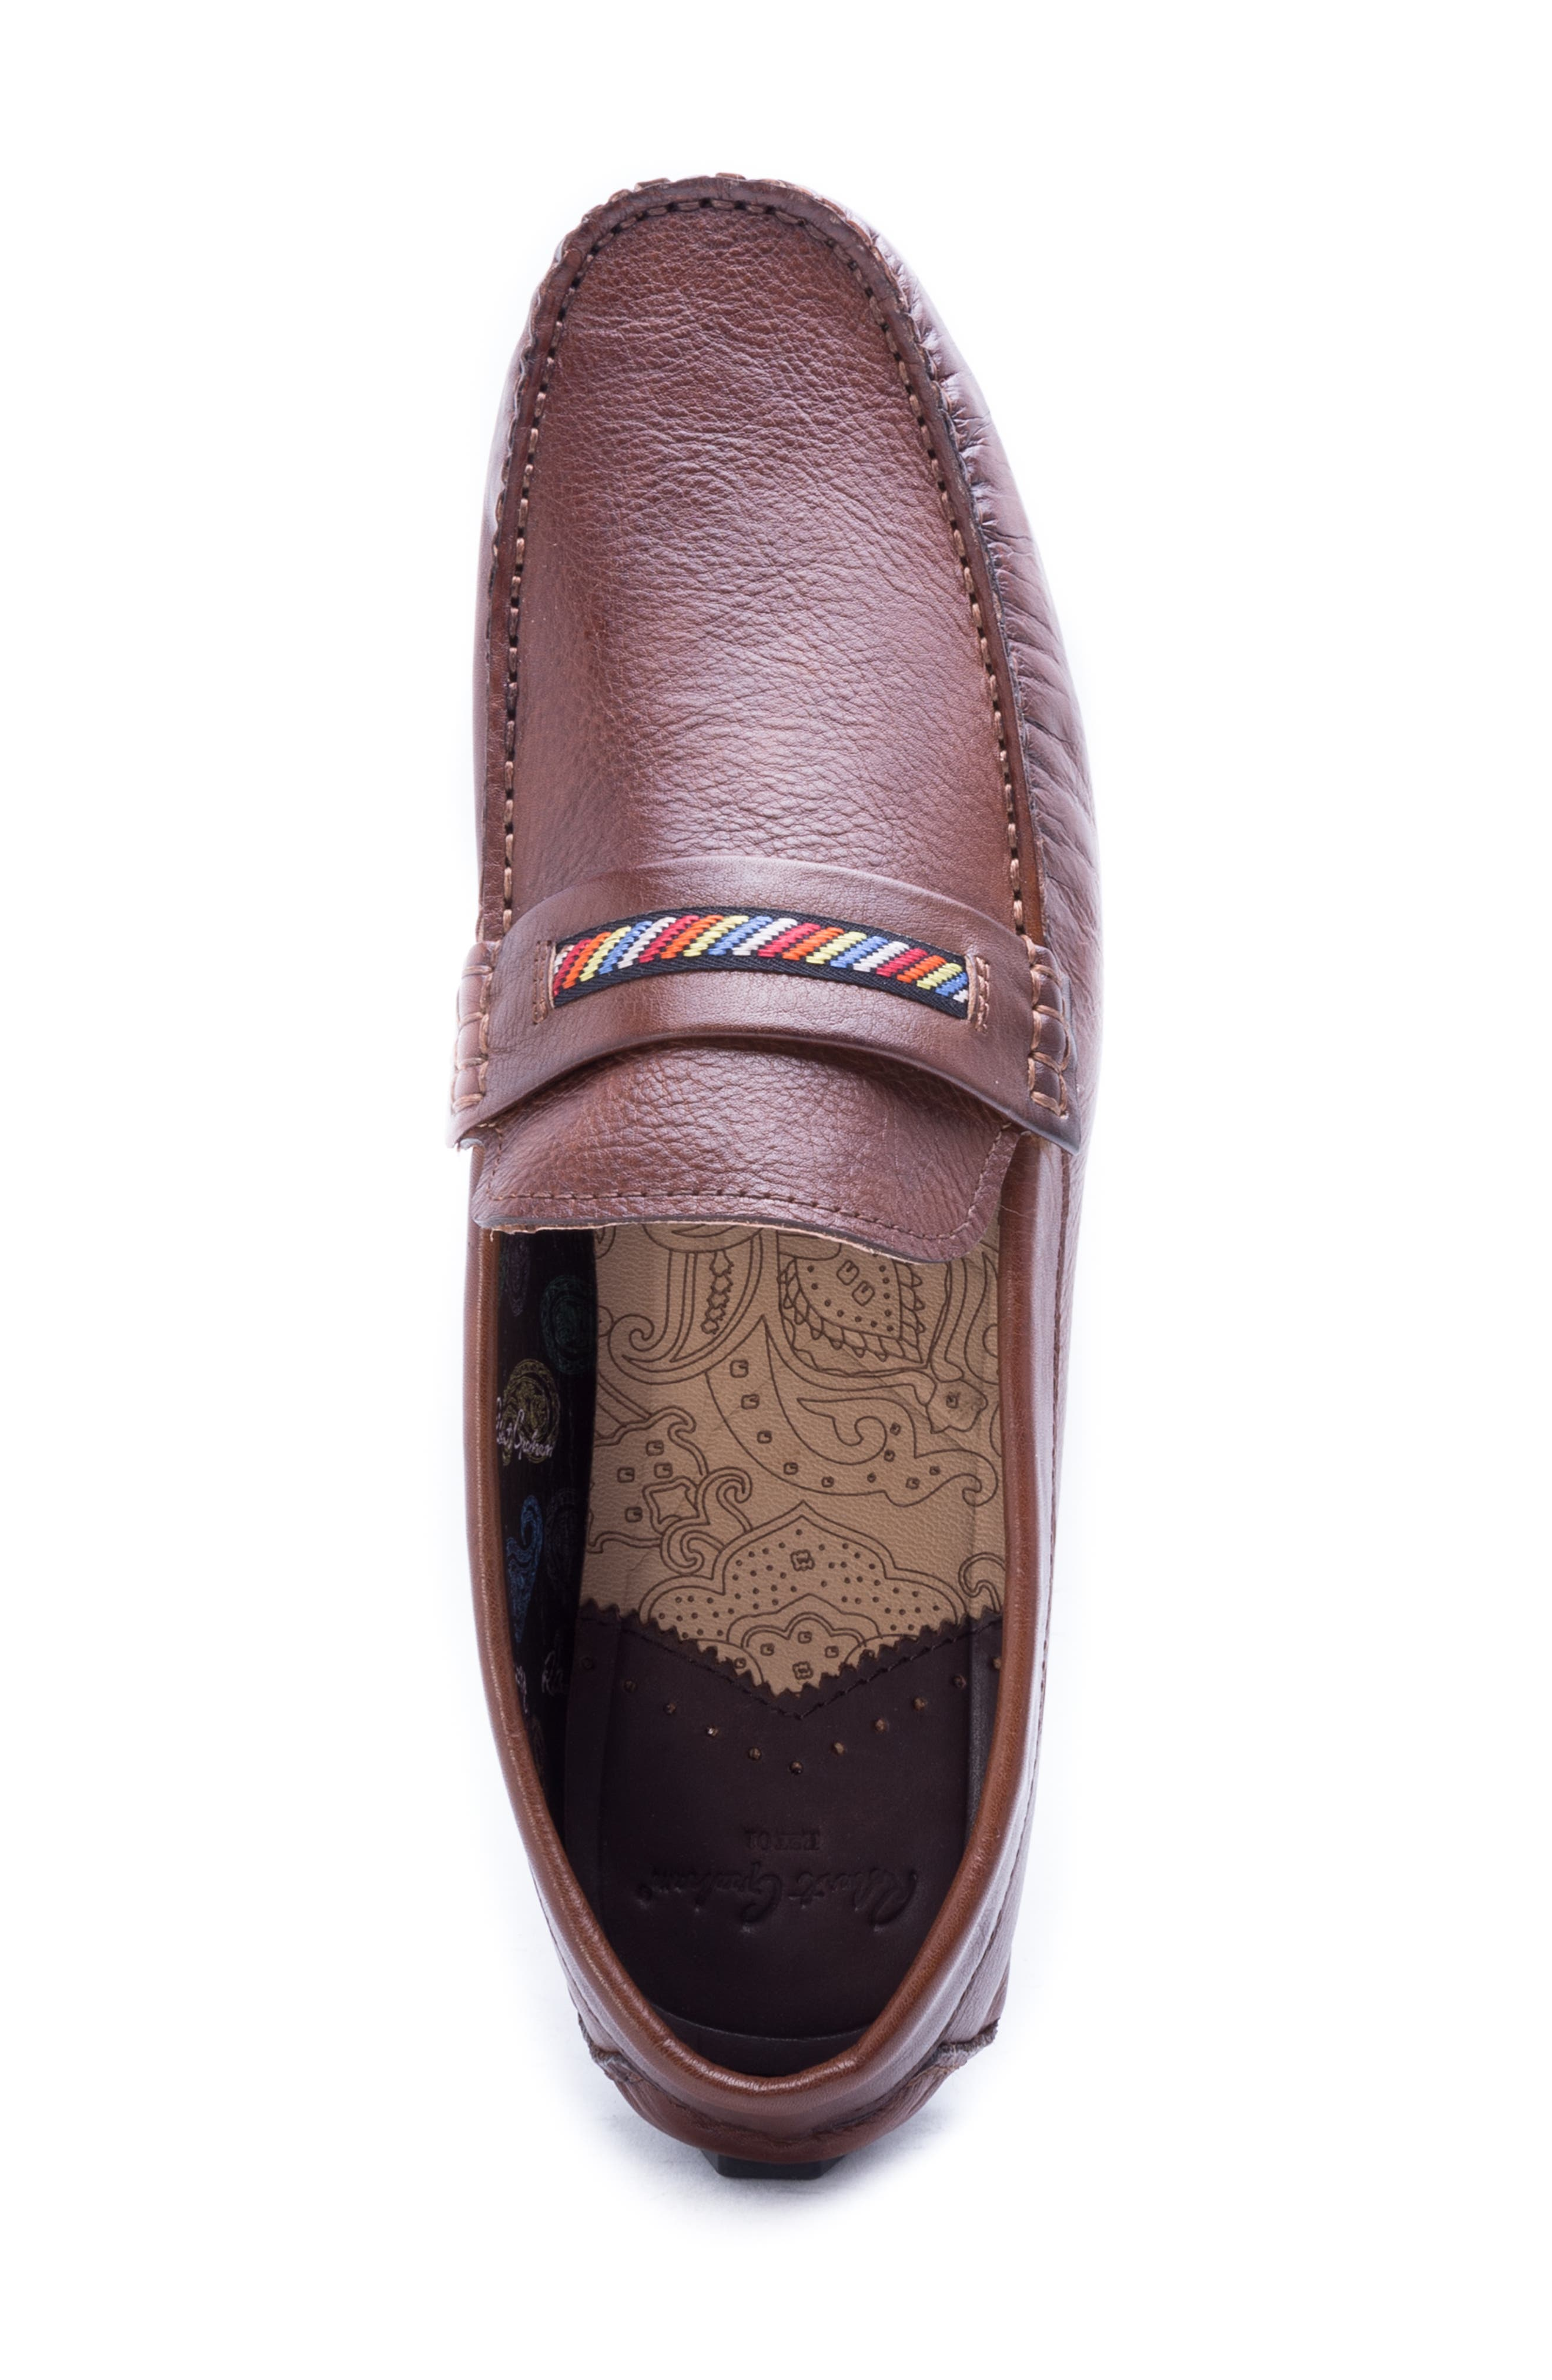 Hart Driving Moccasin,                             Alternate thumbnail 5, color,                             COGNAC LEATHER